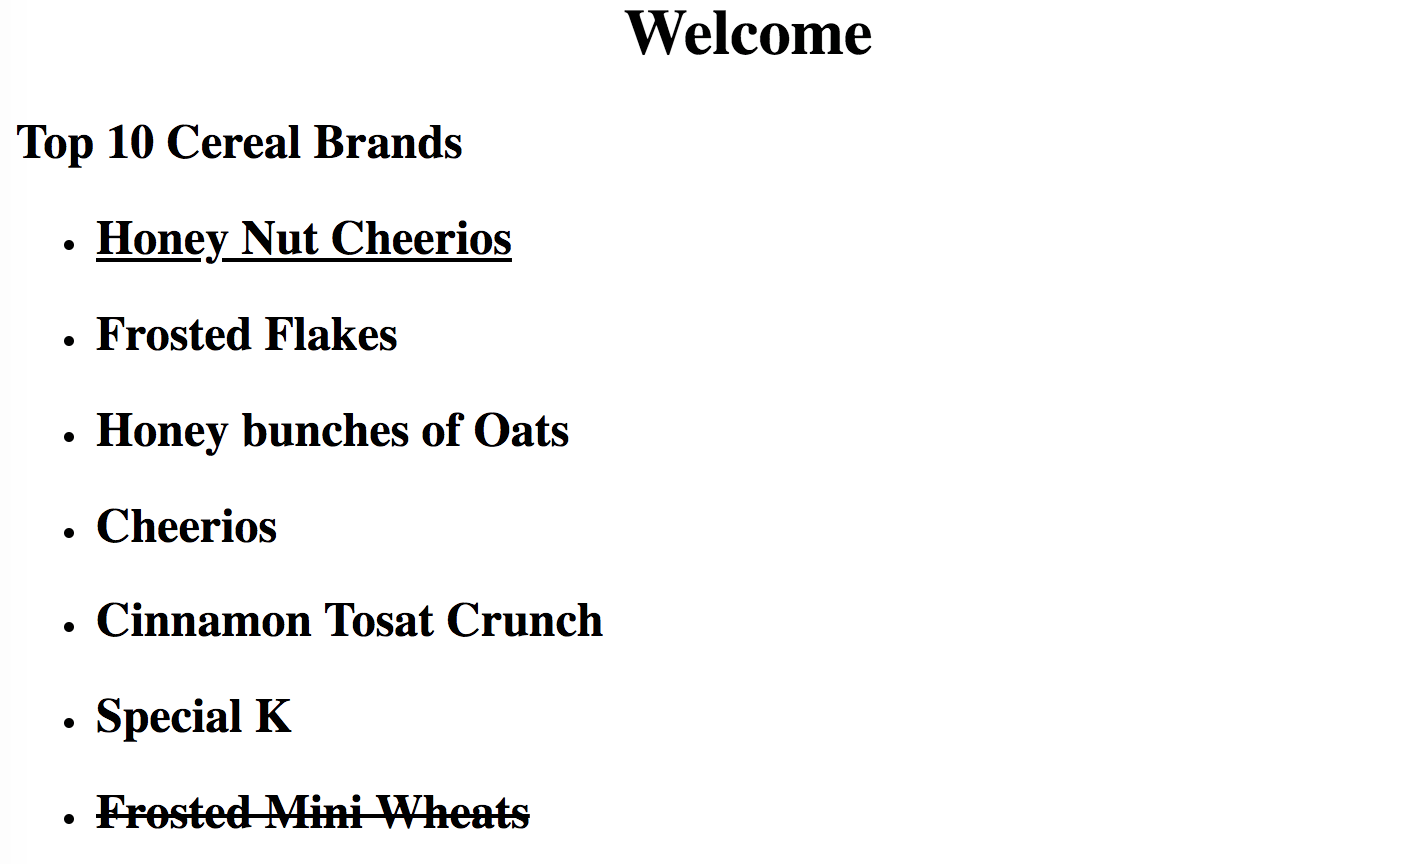 Top 10 Cereal Brands: Honey Nut Cheerios at the top of the list is underlined. Five others are listed. Then Frosted Mini Wheats is struck through at the bottom of the list.